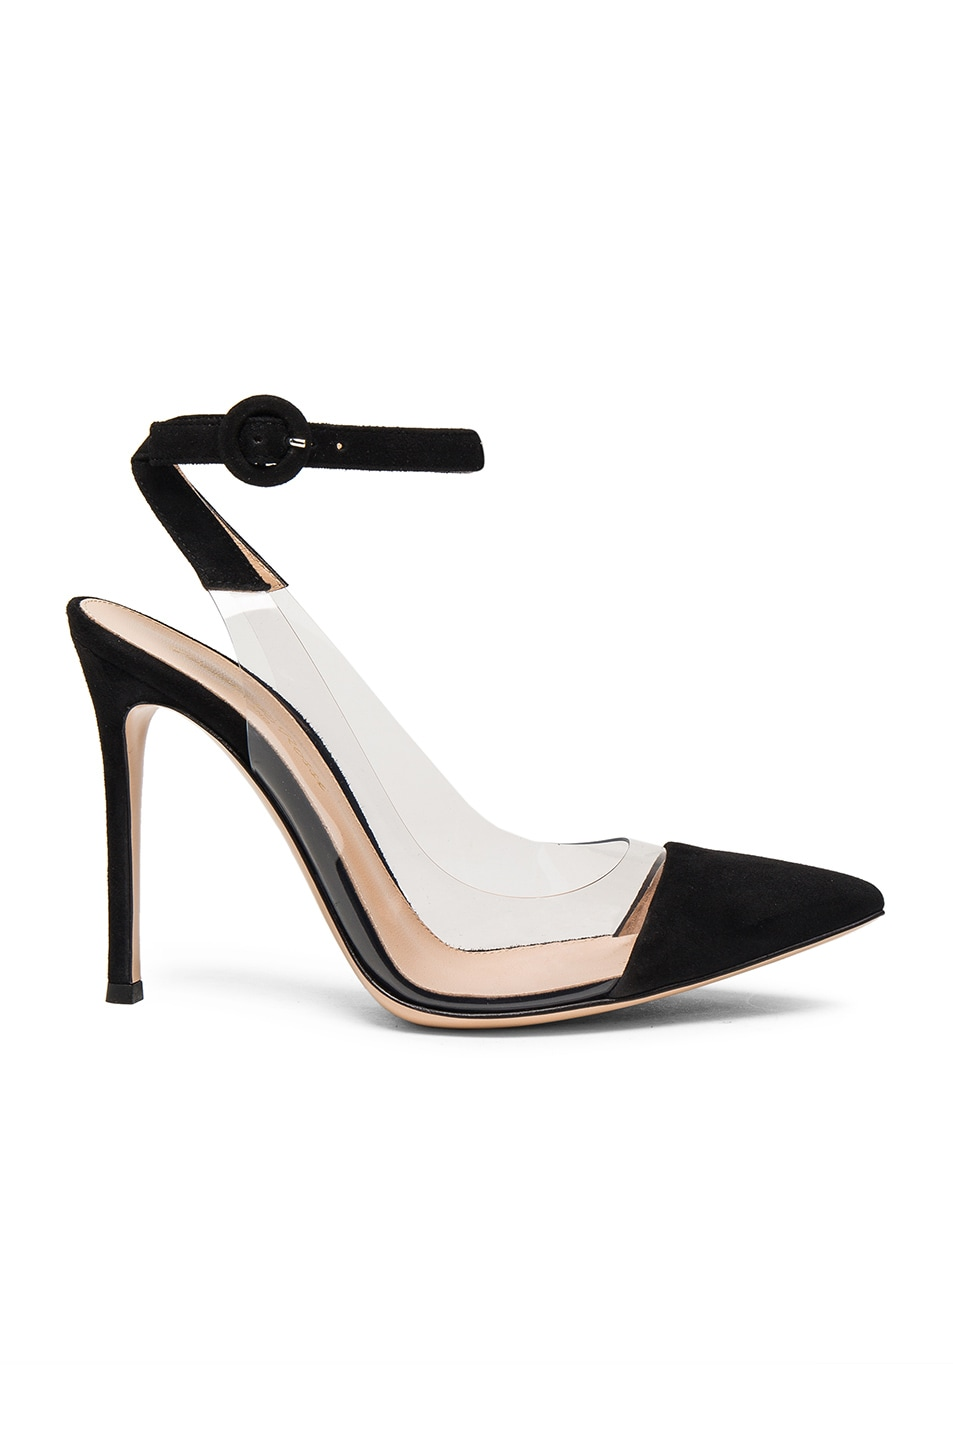 Image 1 of Gianvito Rossi Suede Plexi Slingback Pumps in Black & Transparent